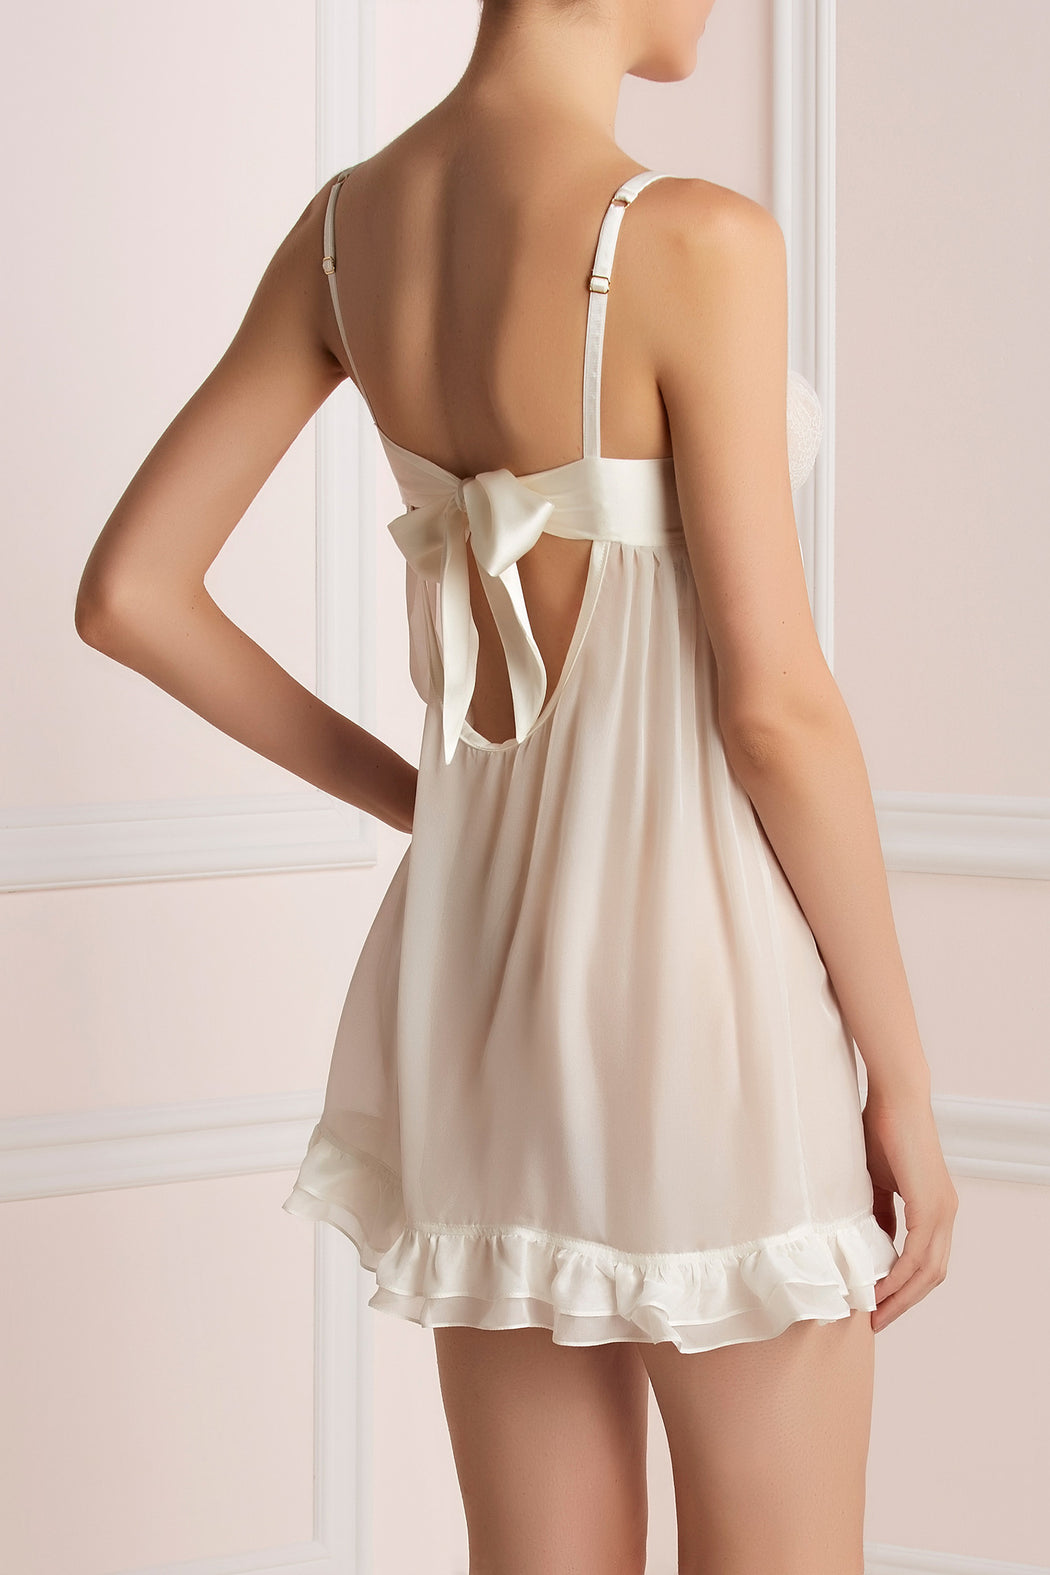 Ivory silk and lace babydoll by Lucile workingirls lingerie